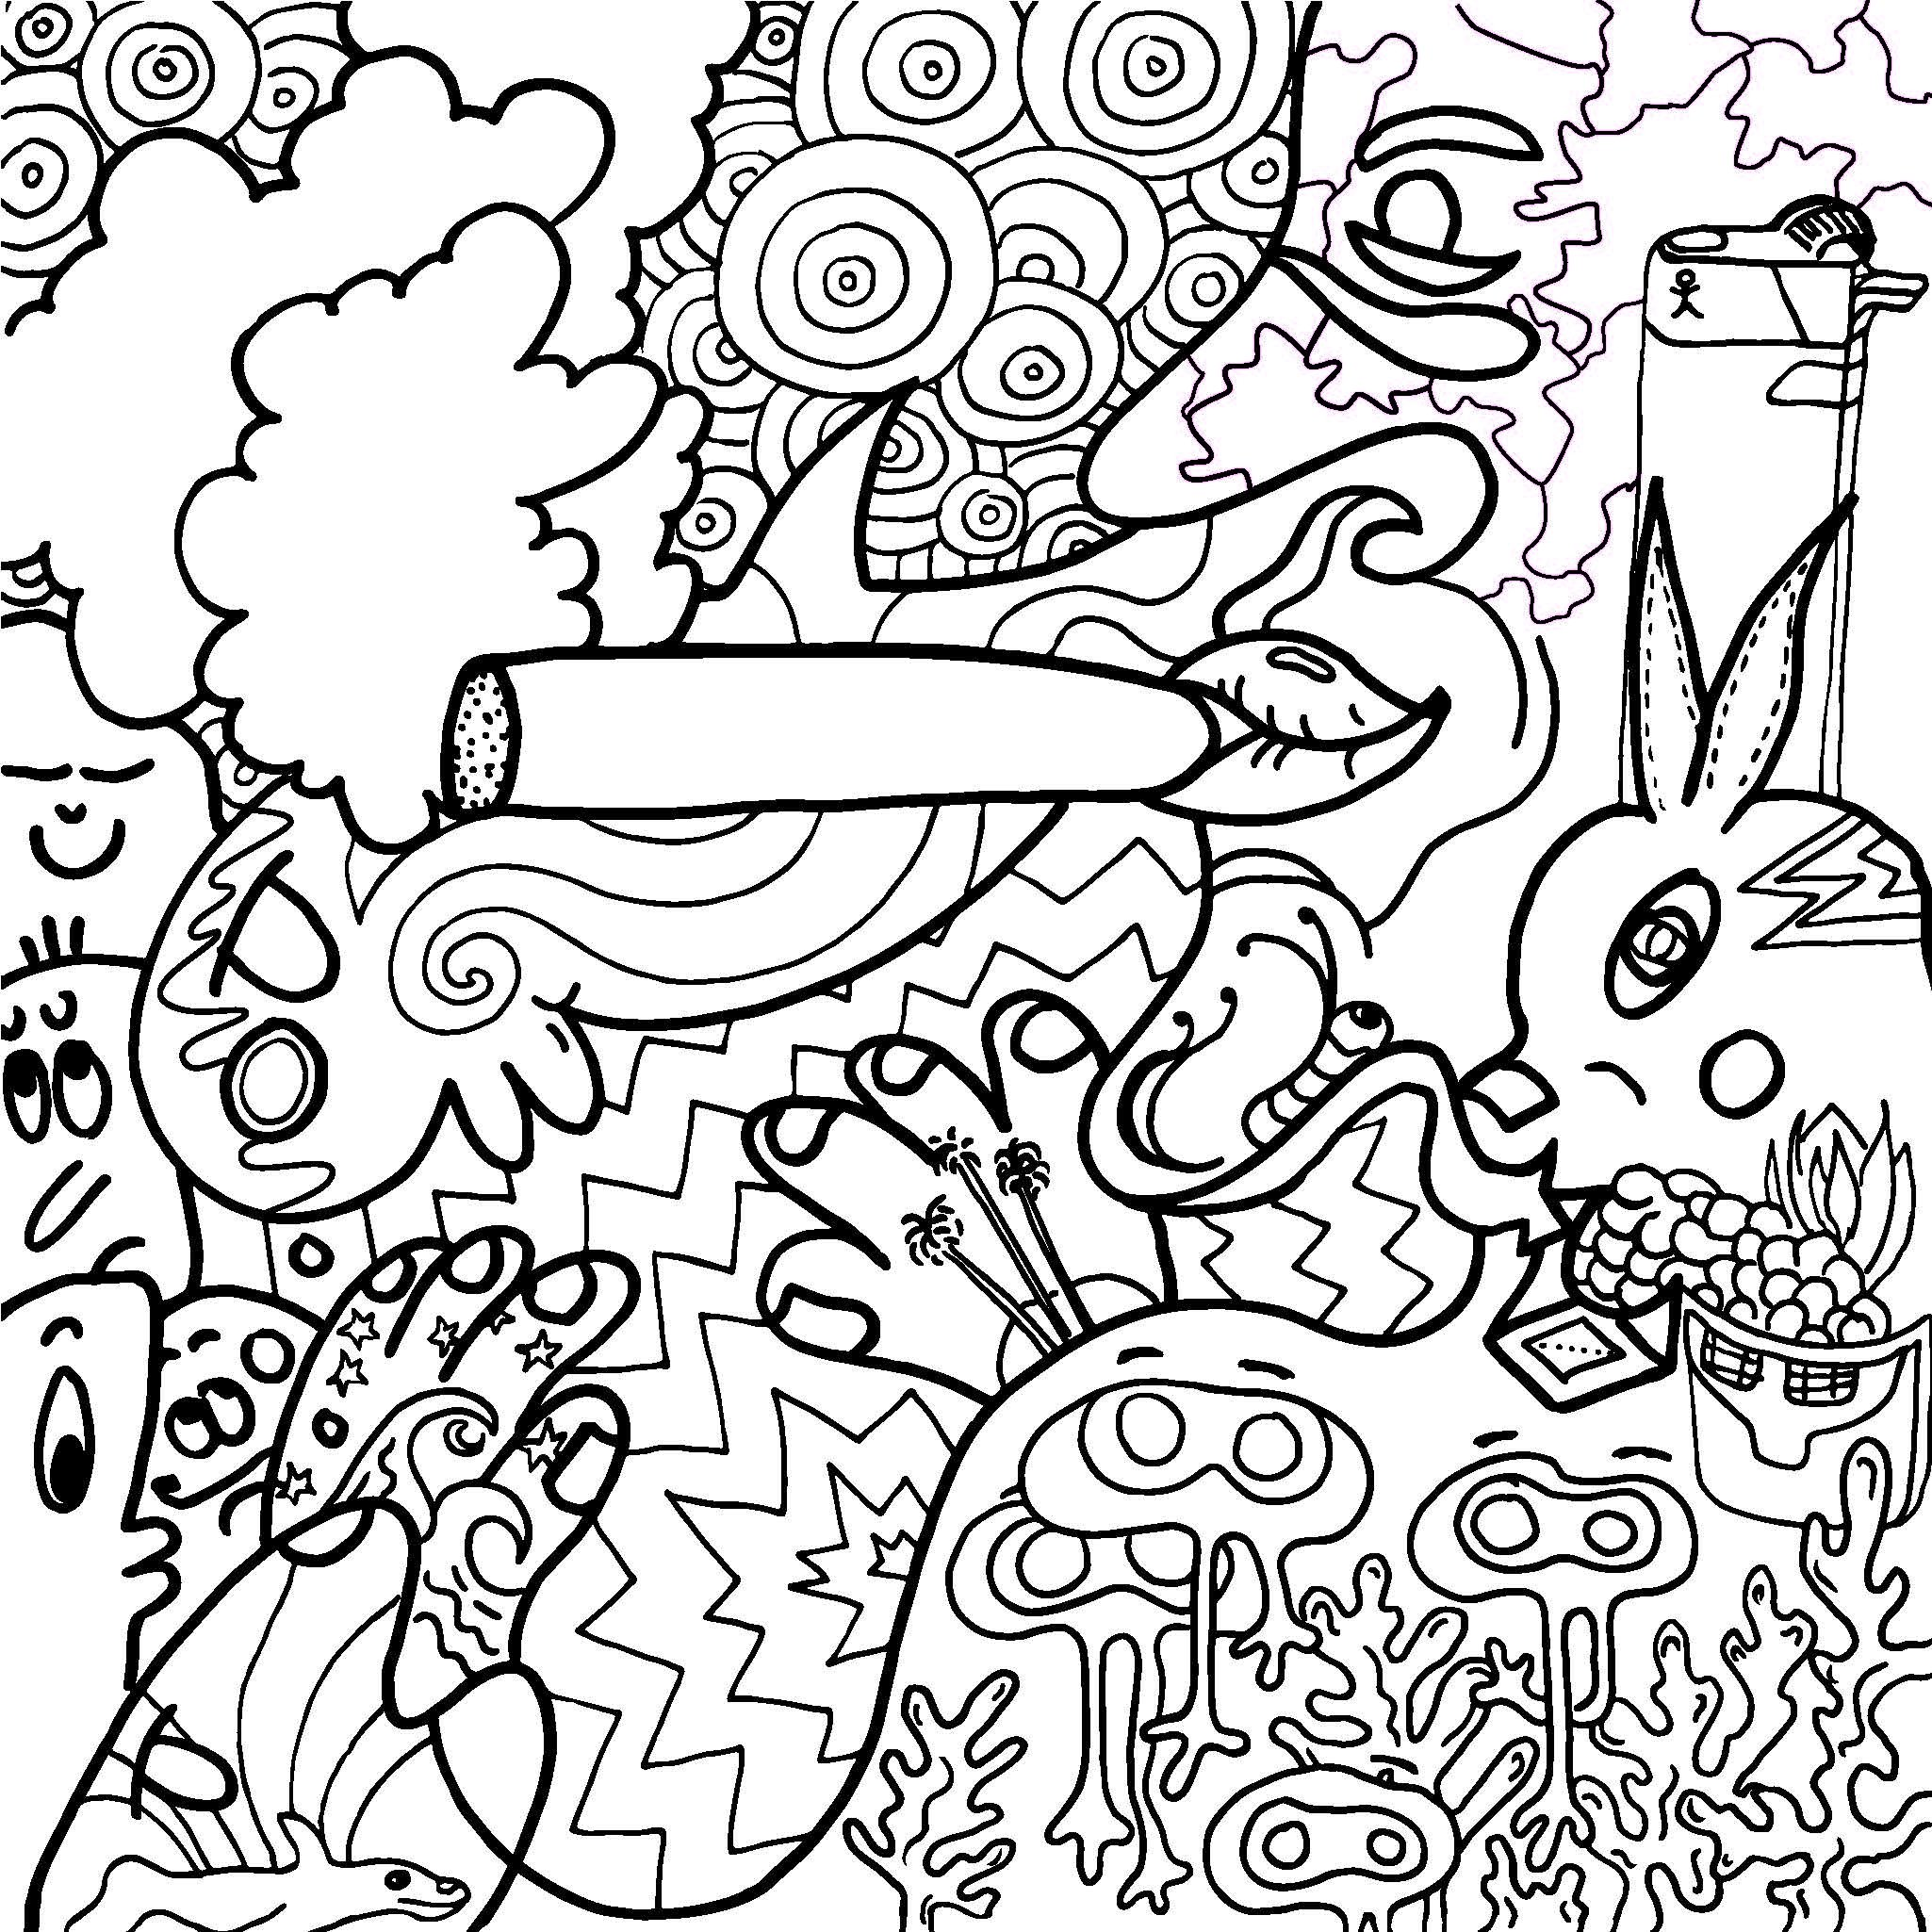 the stoners coloring book coloring for high minded adults jared hoffman 9780143130291 amazoncom books - Trippy Coloring Books